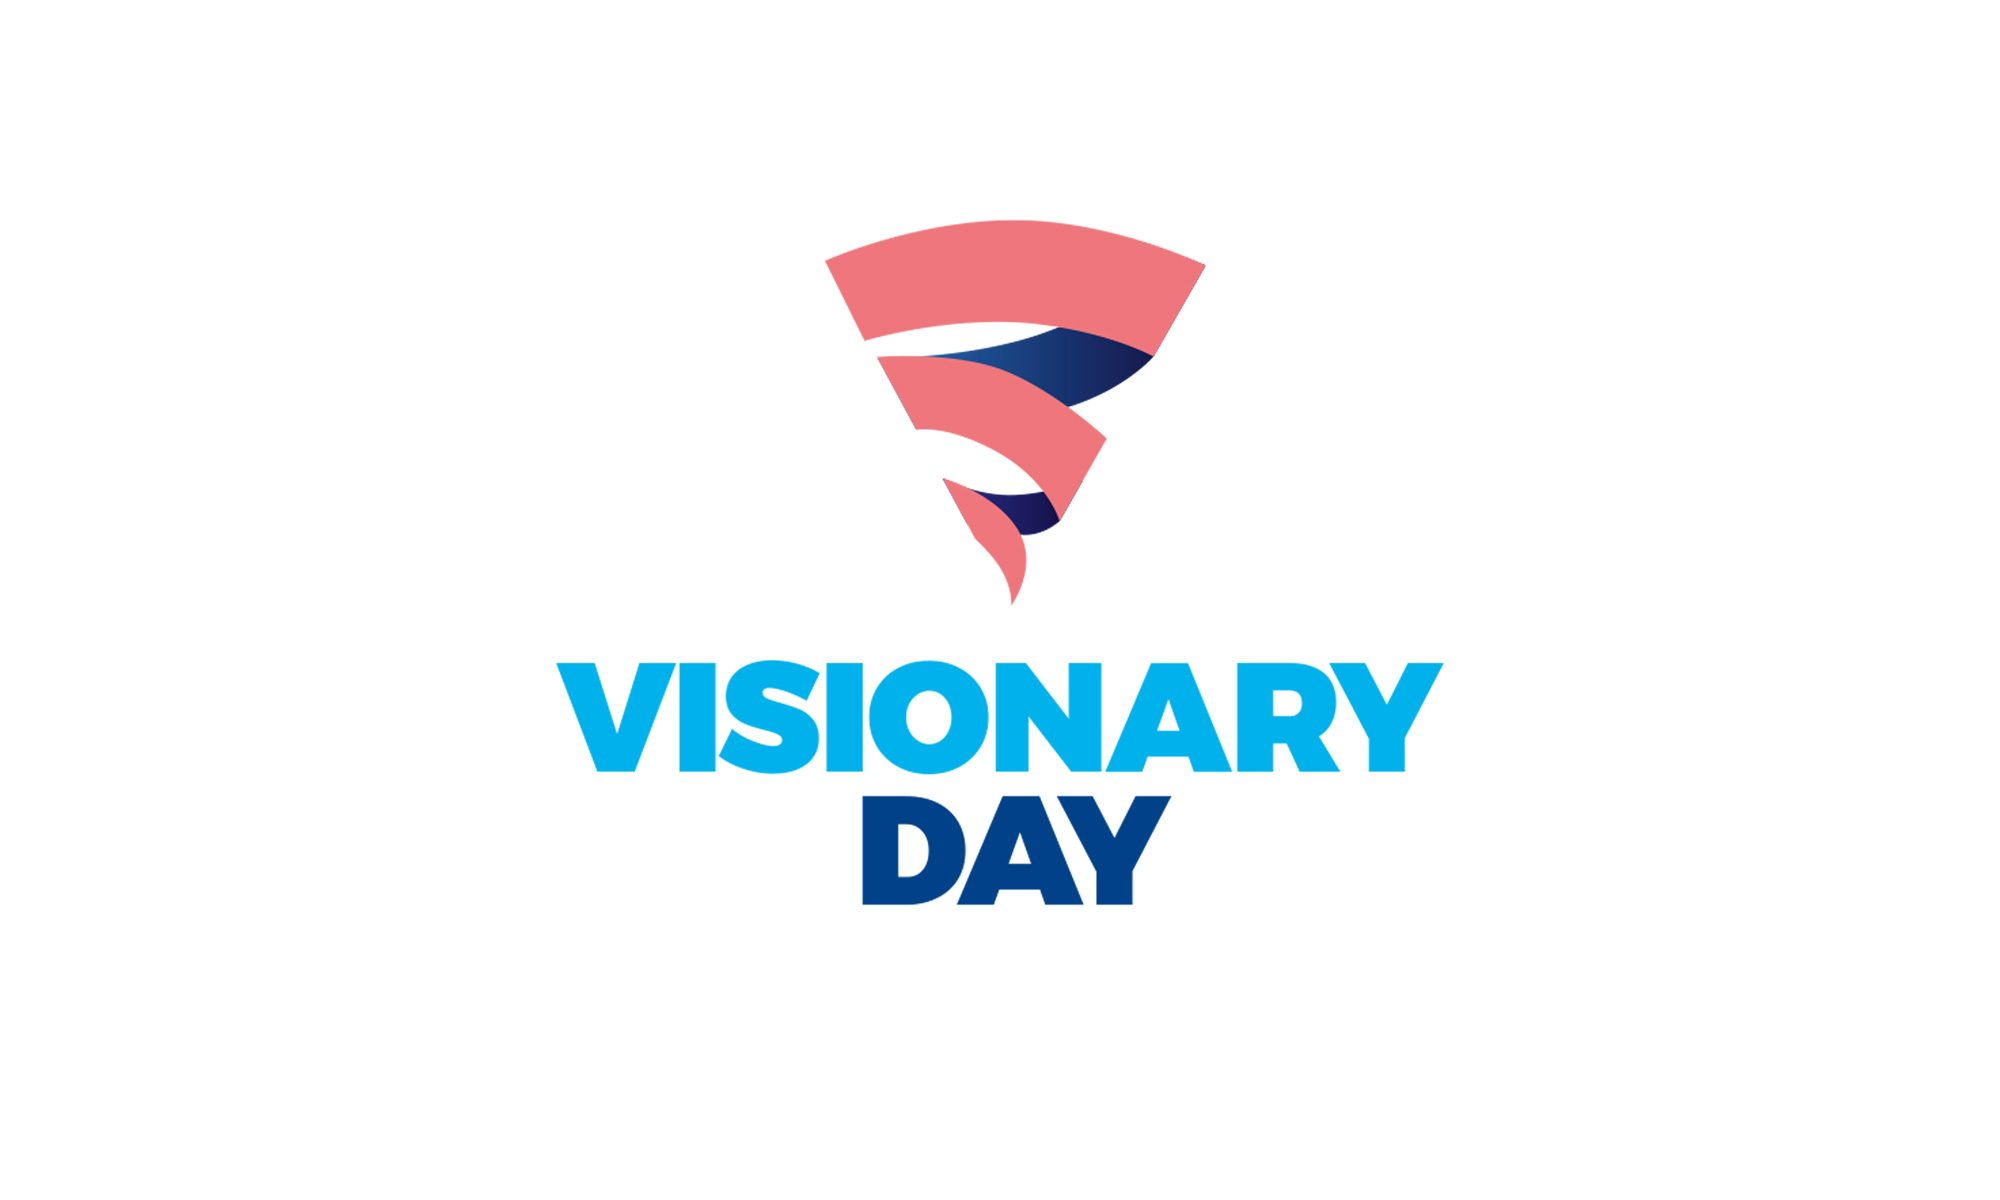 Visionary Day 2019